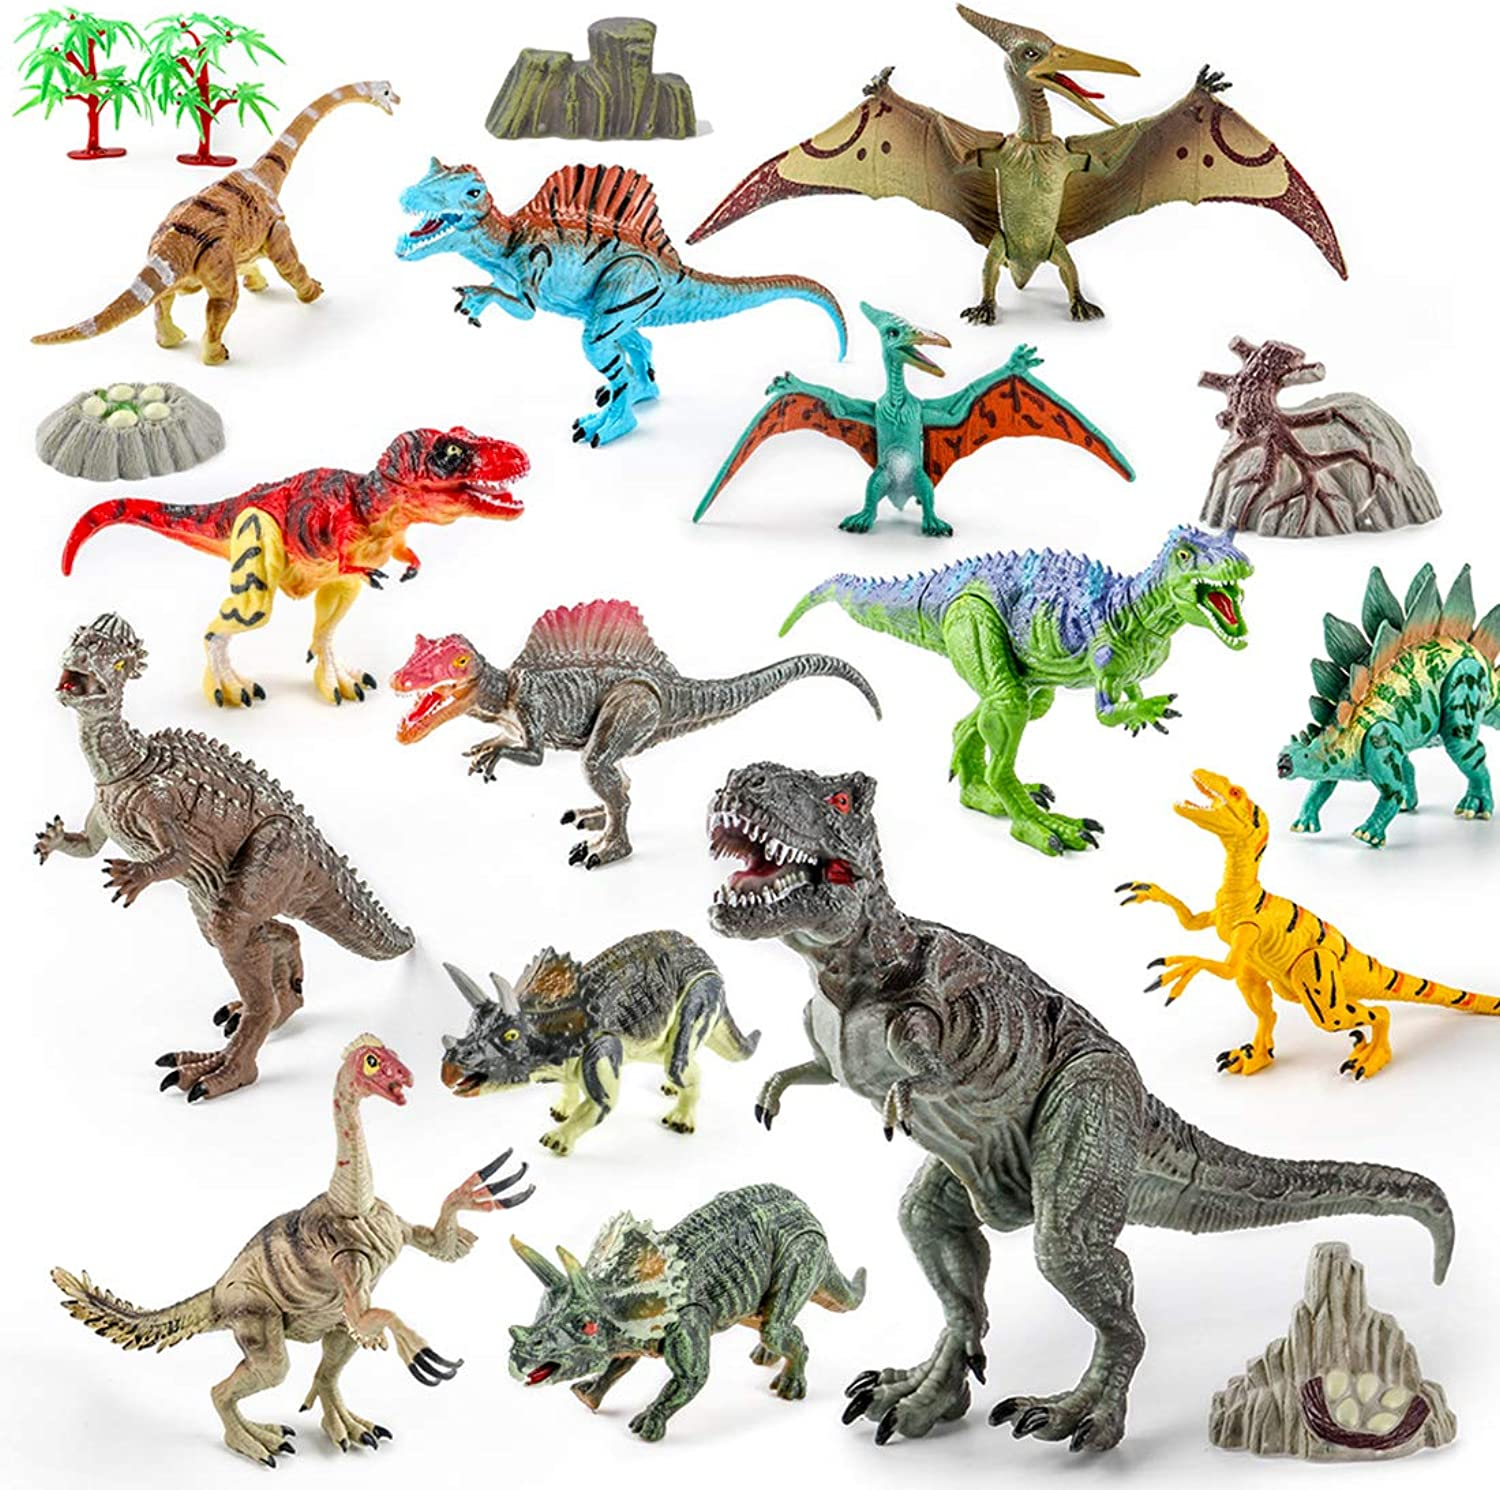 HMANE 20Pcs Dinosaur Figures Simulation Plastic Dinosaur Playset Model Toy Early Education Cognition Playset for Ages 3 and Up